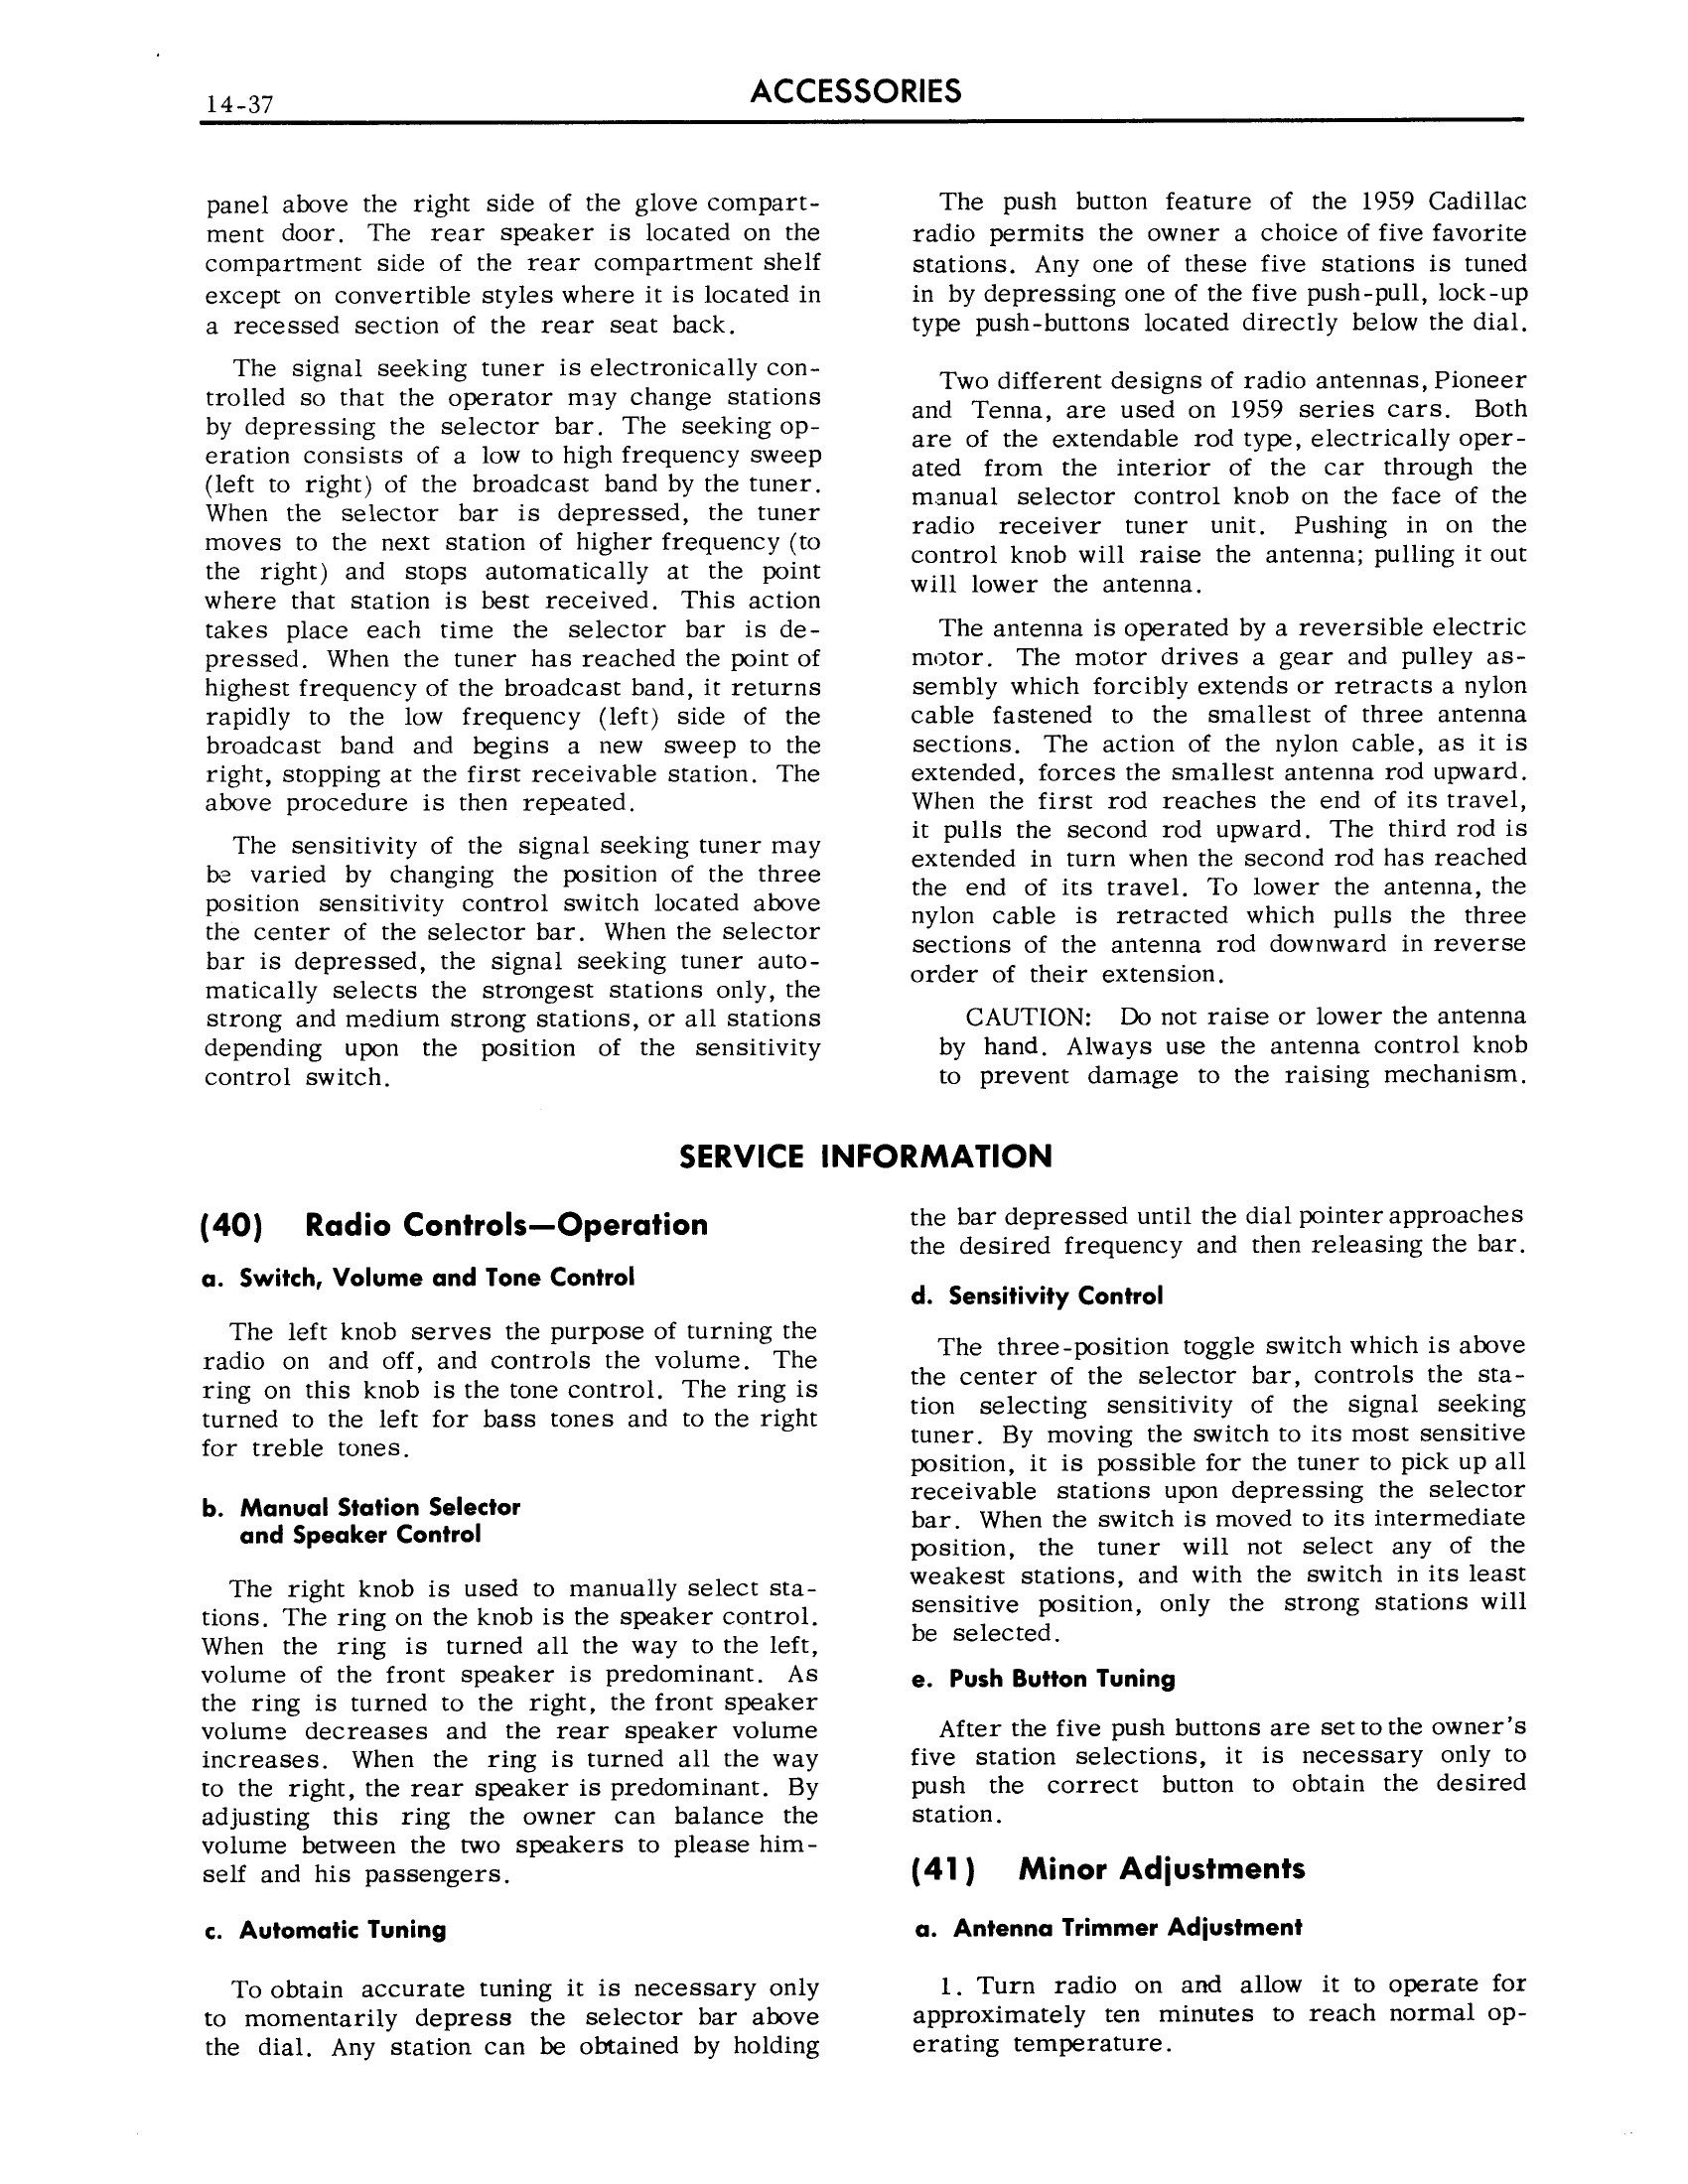 1959 Cadillac Shop Manual- Accessories Page 37 of 58